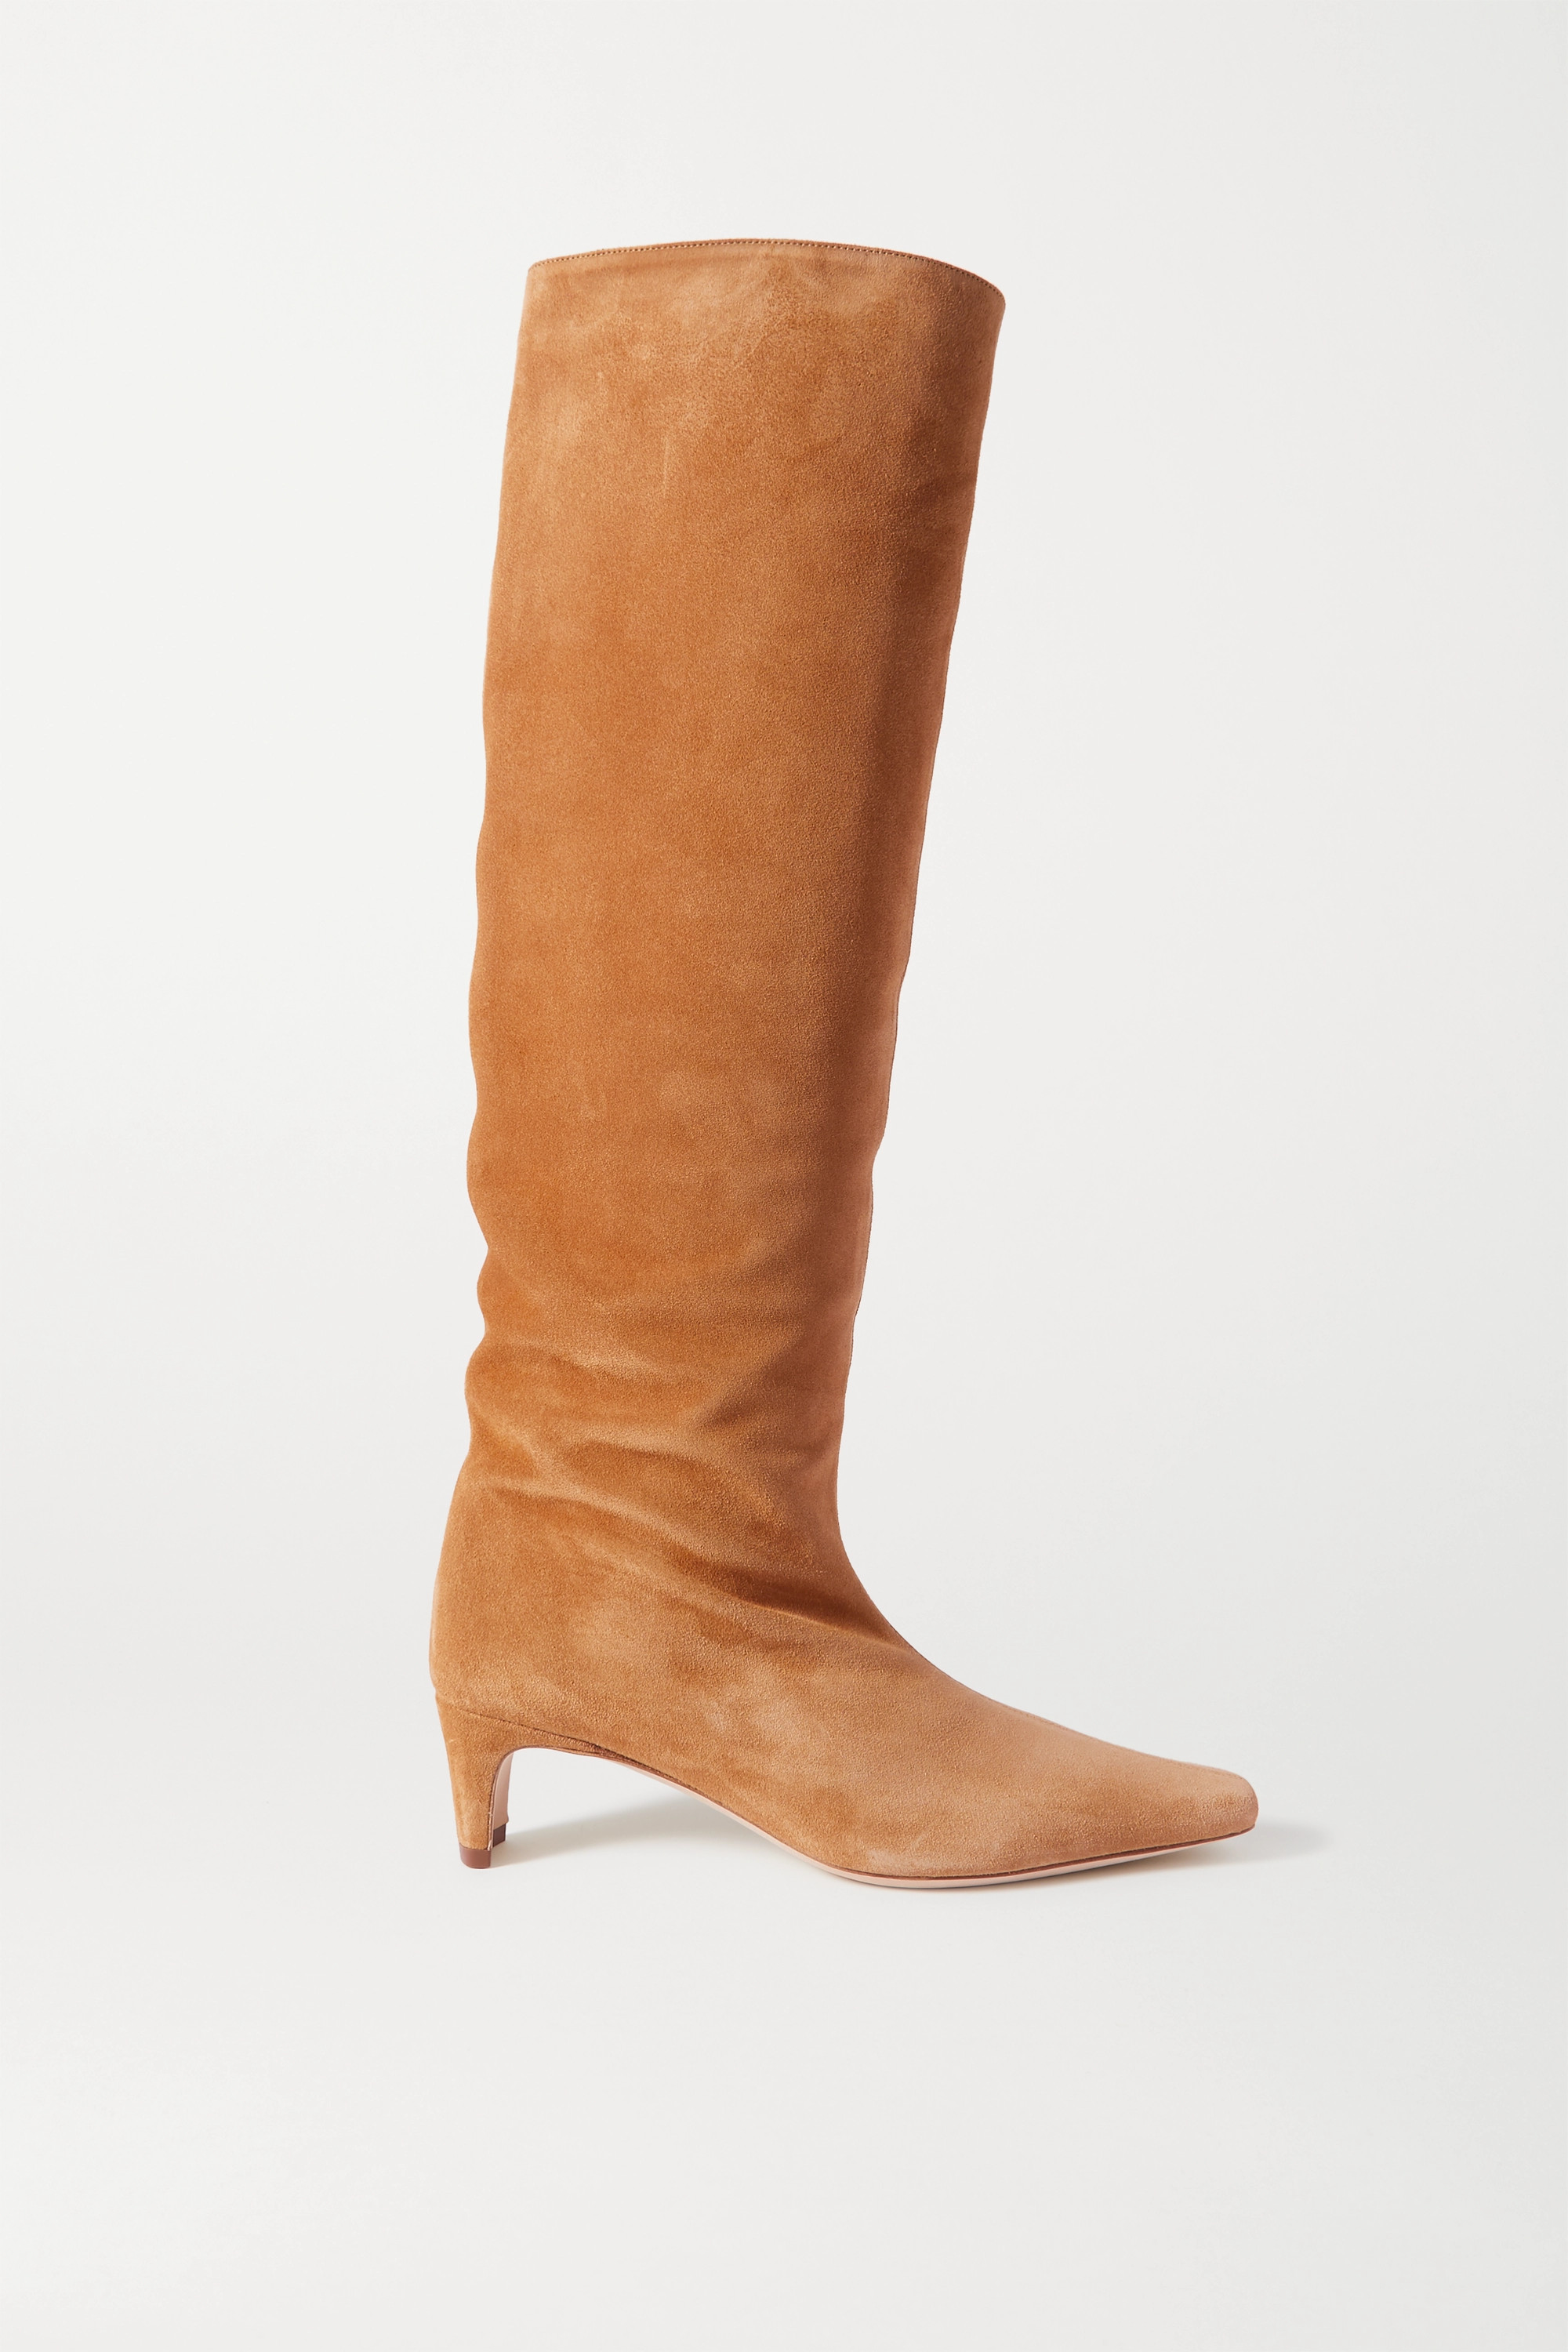 STAUD Wally suede knee boots